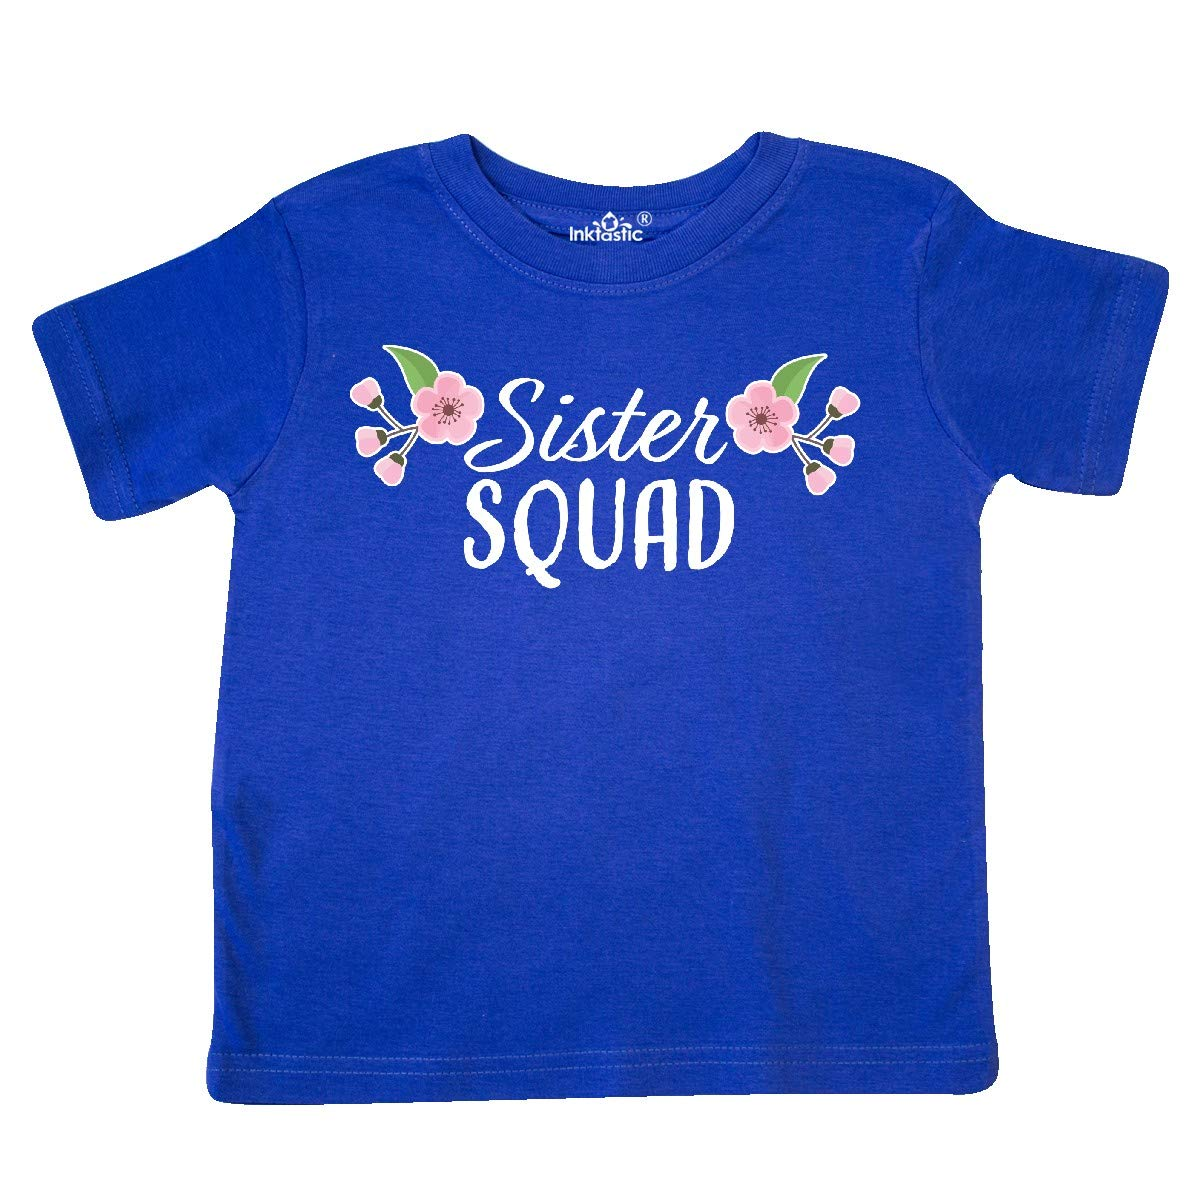 inktastic Sister Squad with Cherry Blossom Flowers Toddler T-Shirt